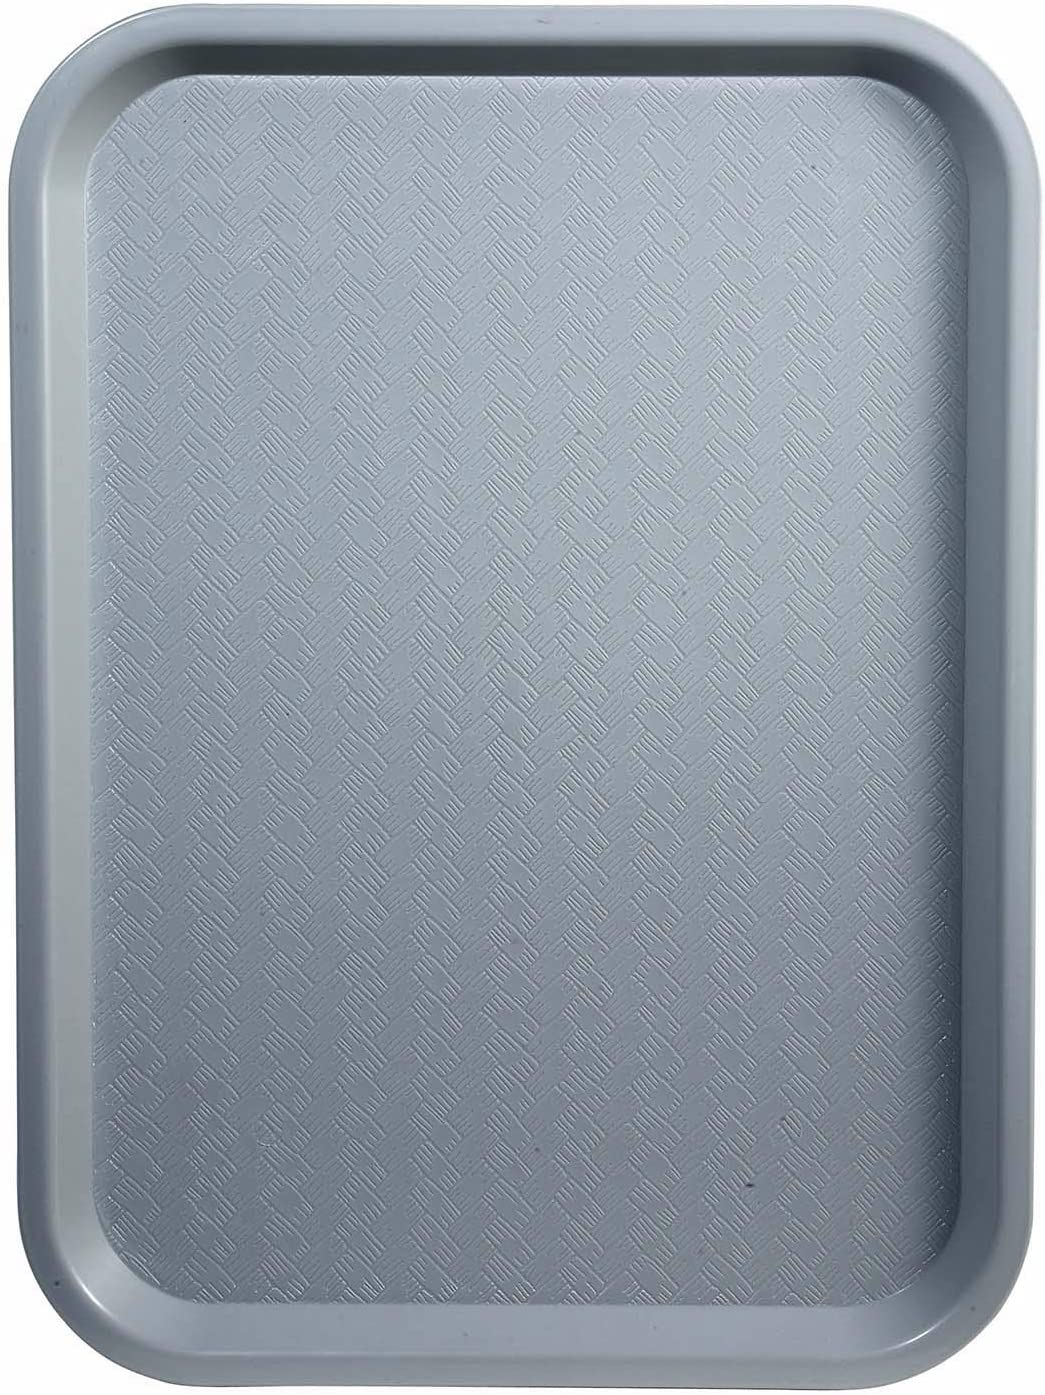 Winco Fast Food Tray, 14 by 18-Inch, Gray